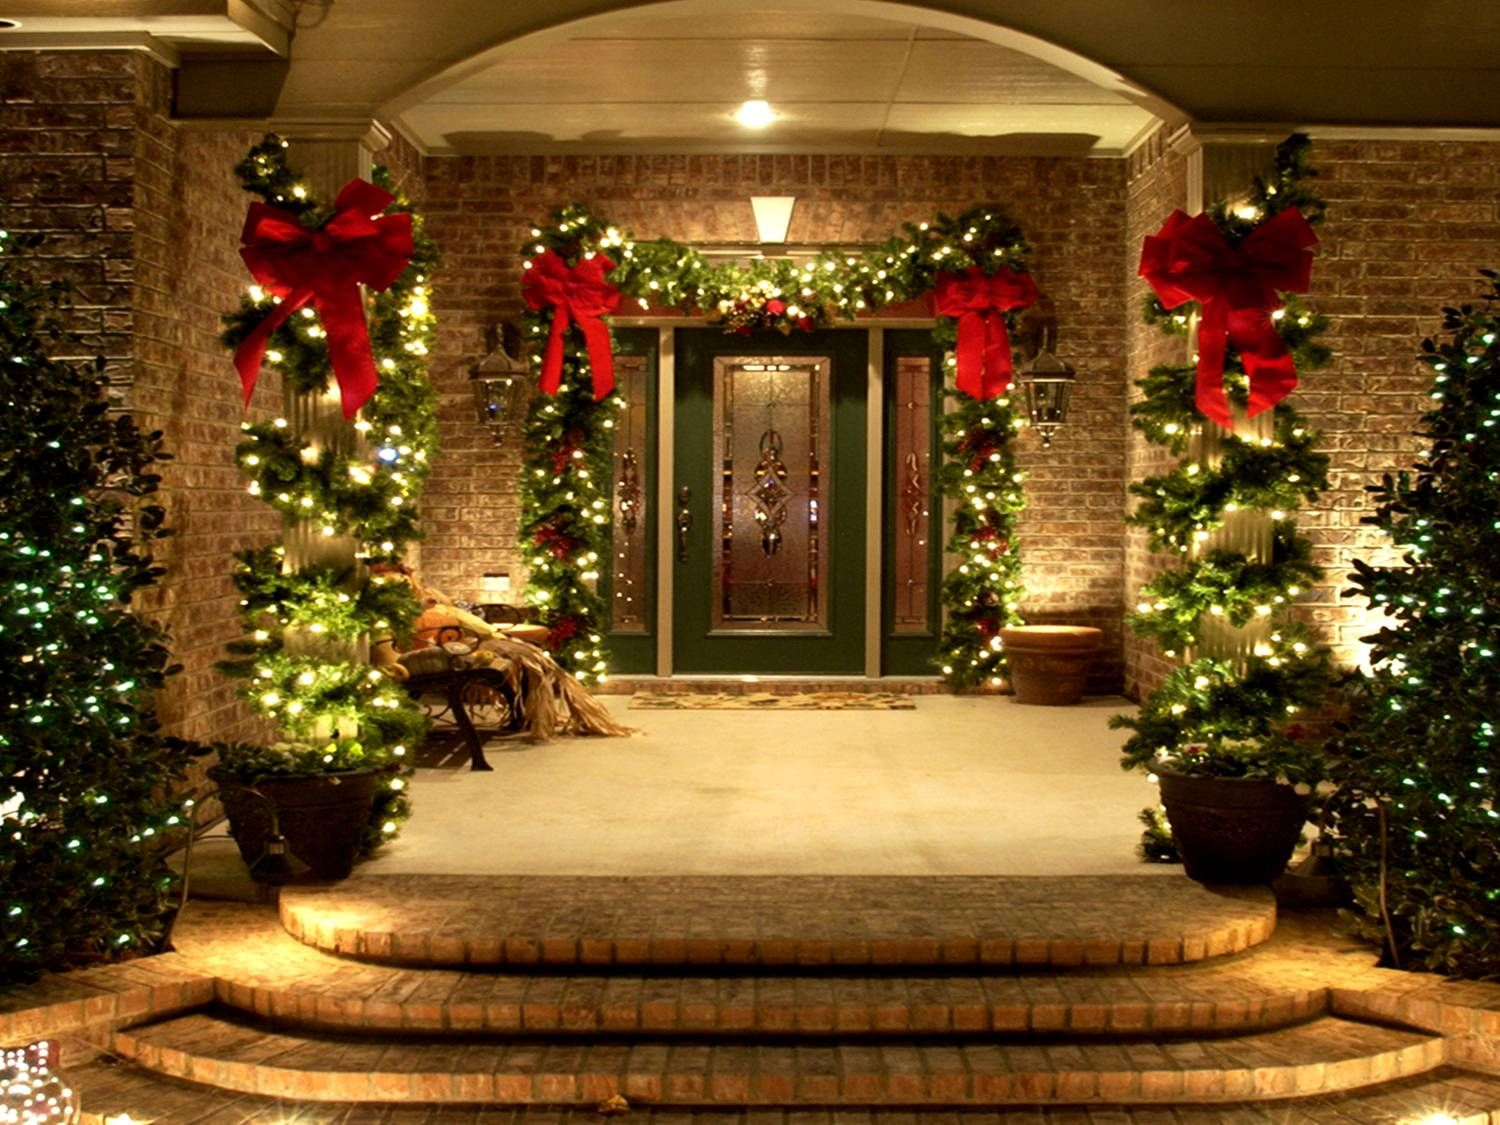 Christmas House Party Ideas Part - 32: Festive Porch And Home Entrance Christmas Decor Featuring Lighted Green  Garland With Red Bow Around The Door And Lighted Garland Wrapping Porch  Column Idea.